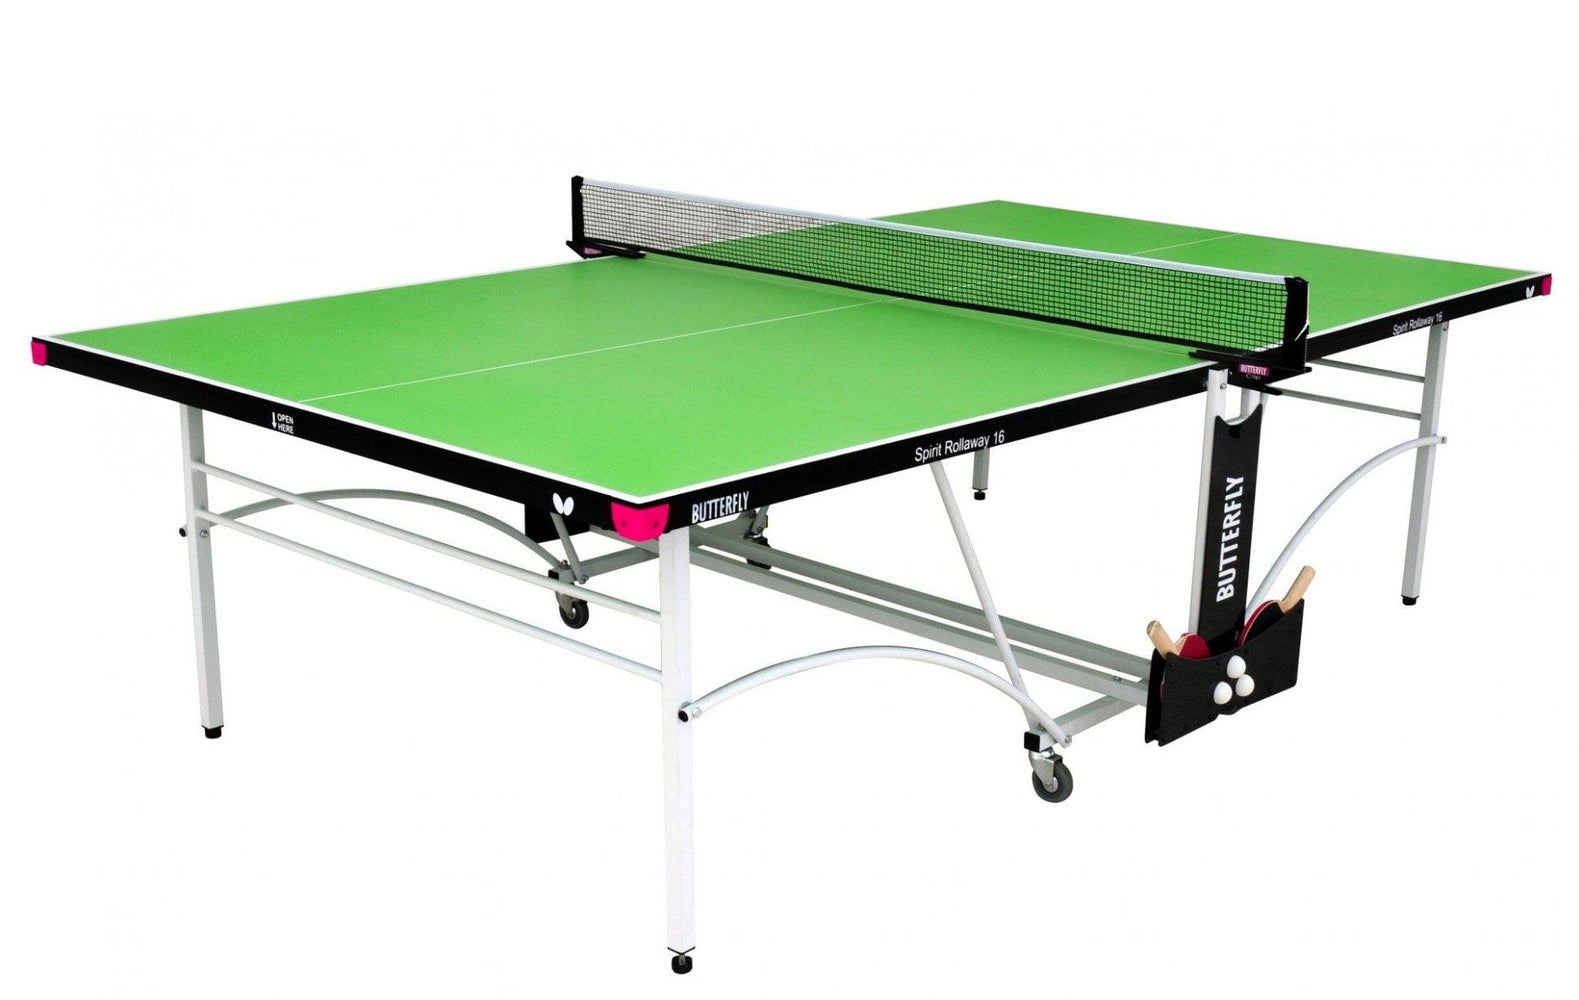 Butterfly Spirit 16 Rollaway Table Tennis